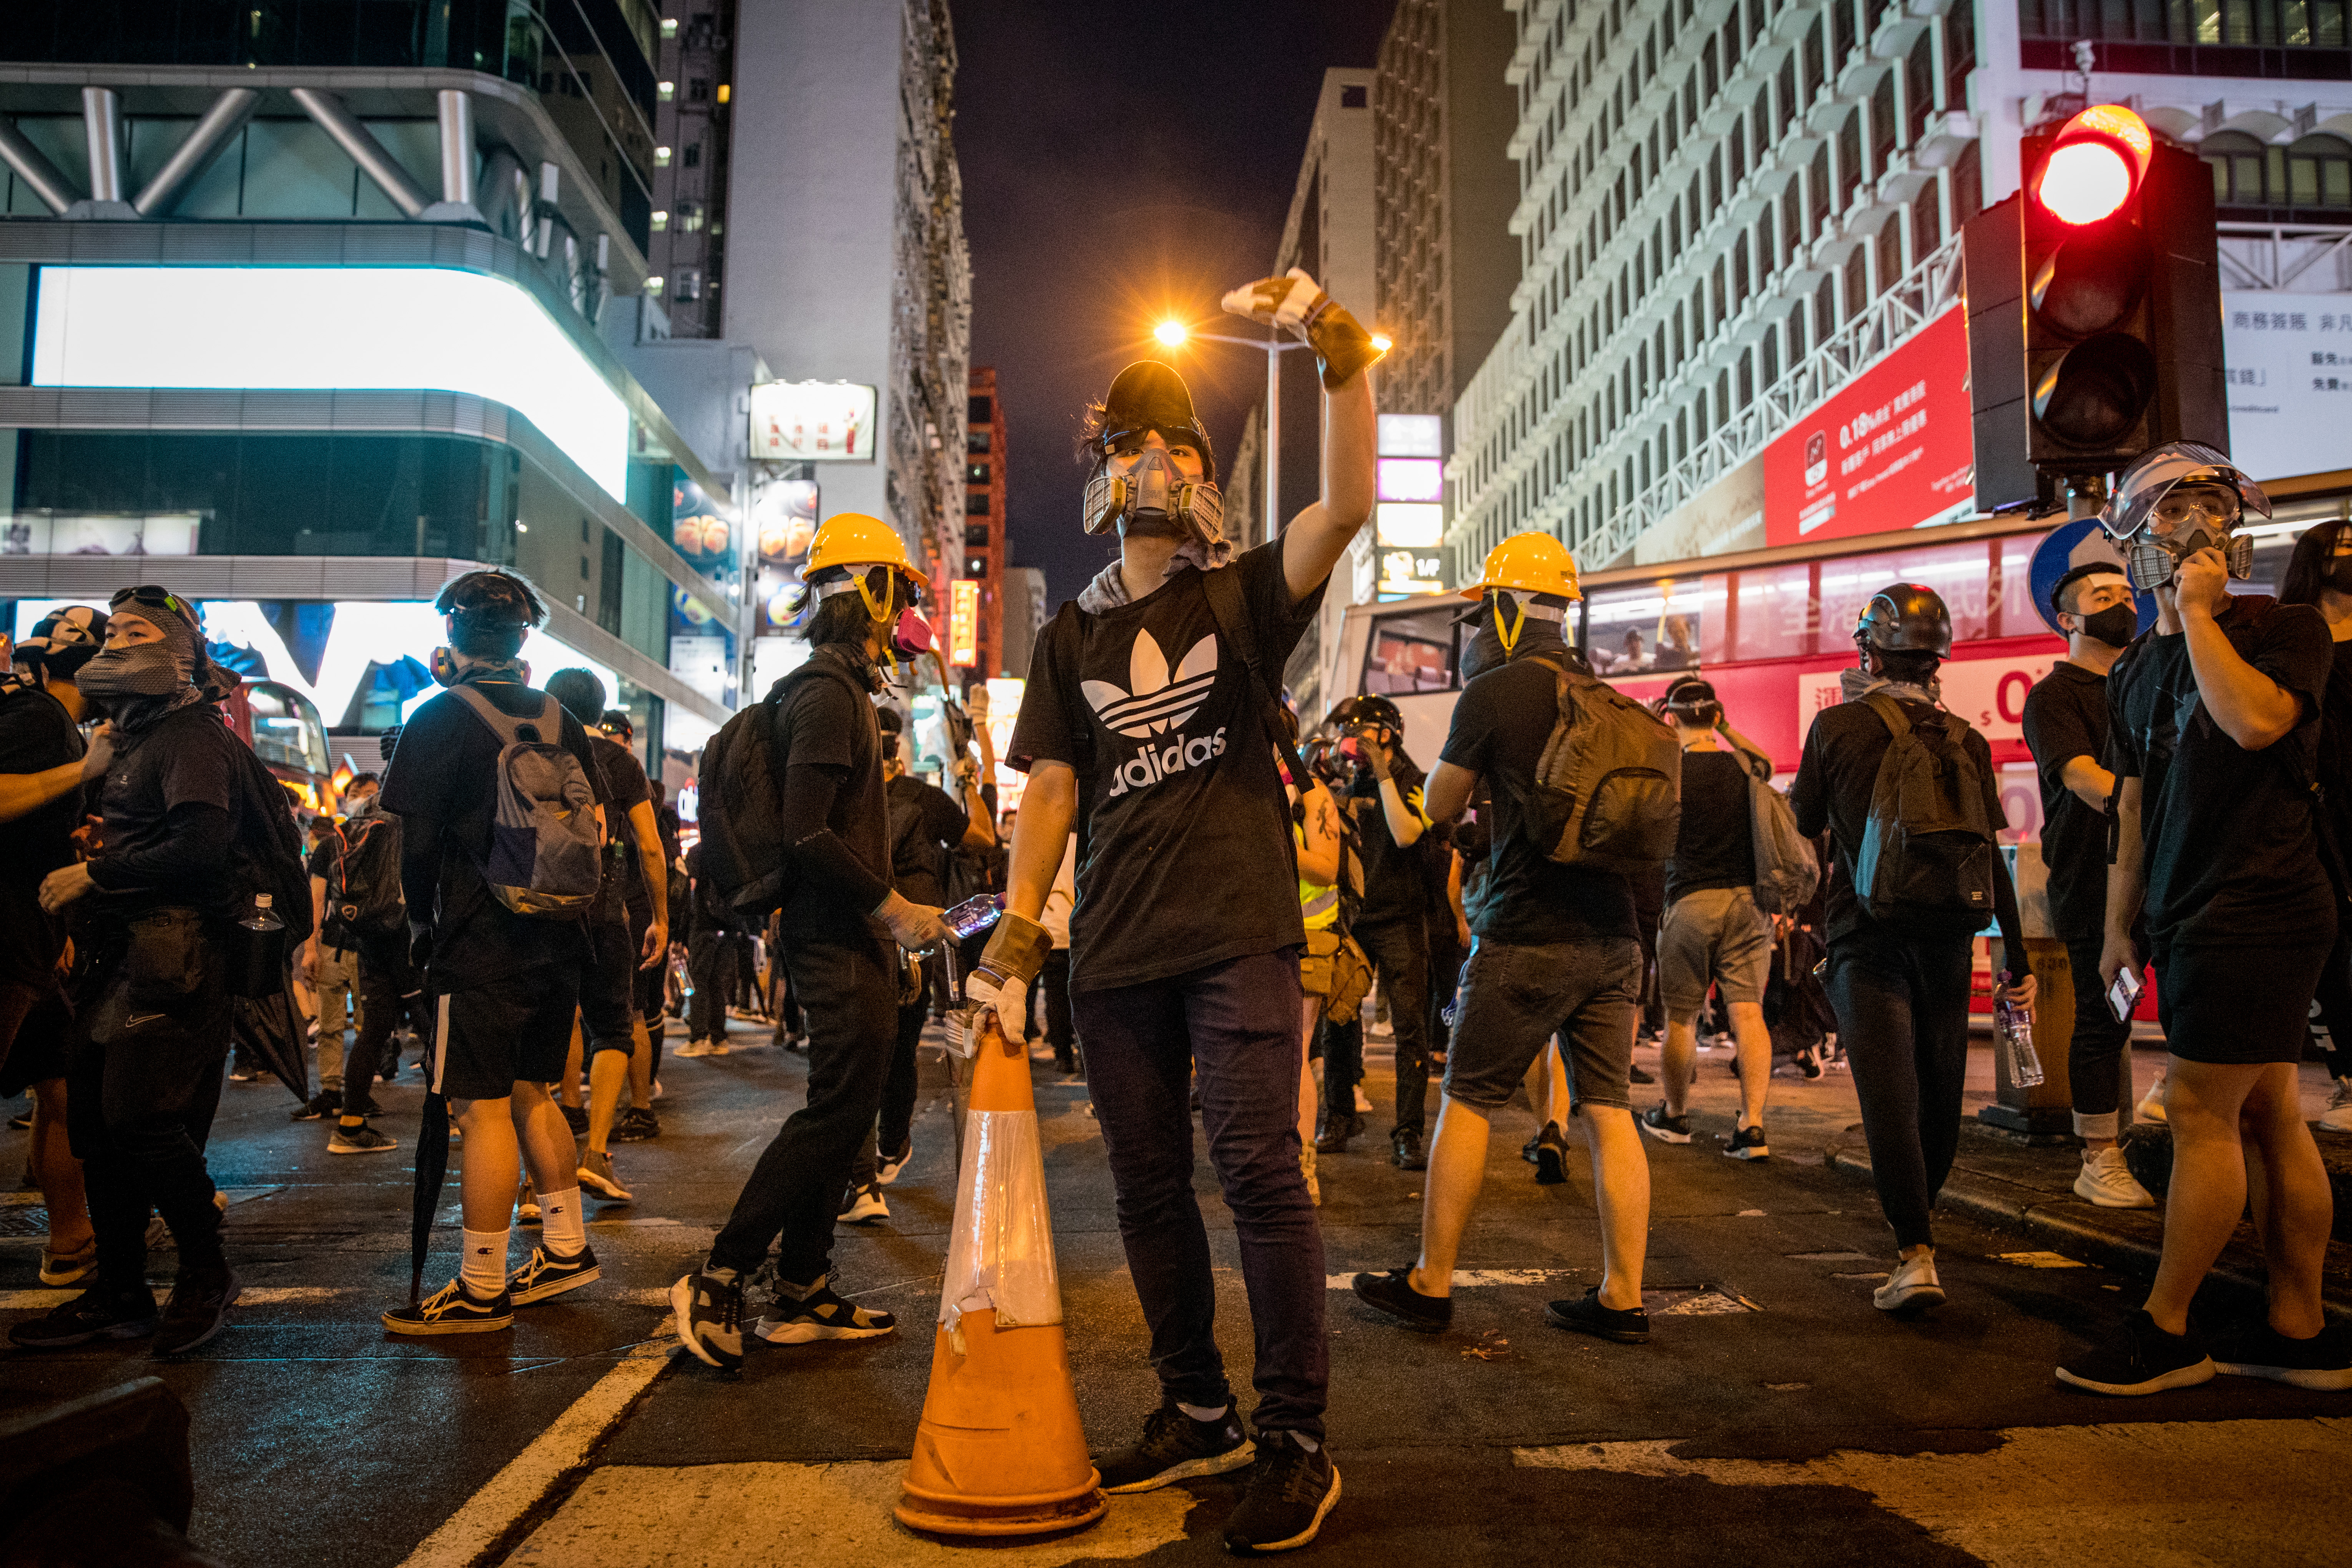 Pro-democracy protesters retreat as police advance on Nathan road on August 17, 2019 in Hong Kong, China.